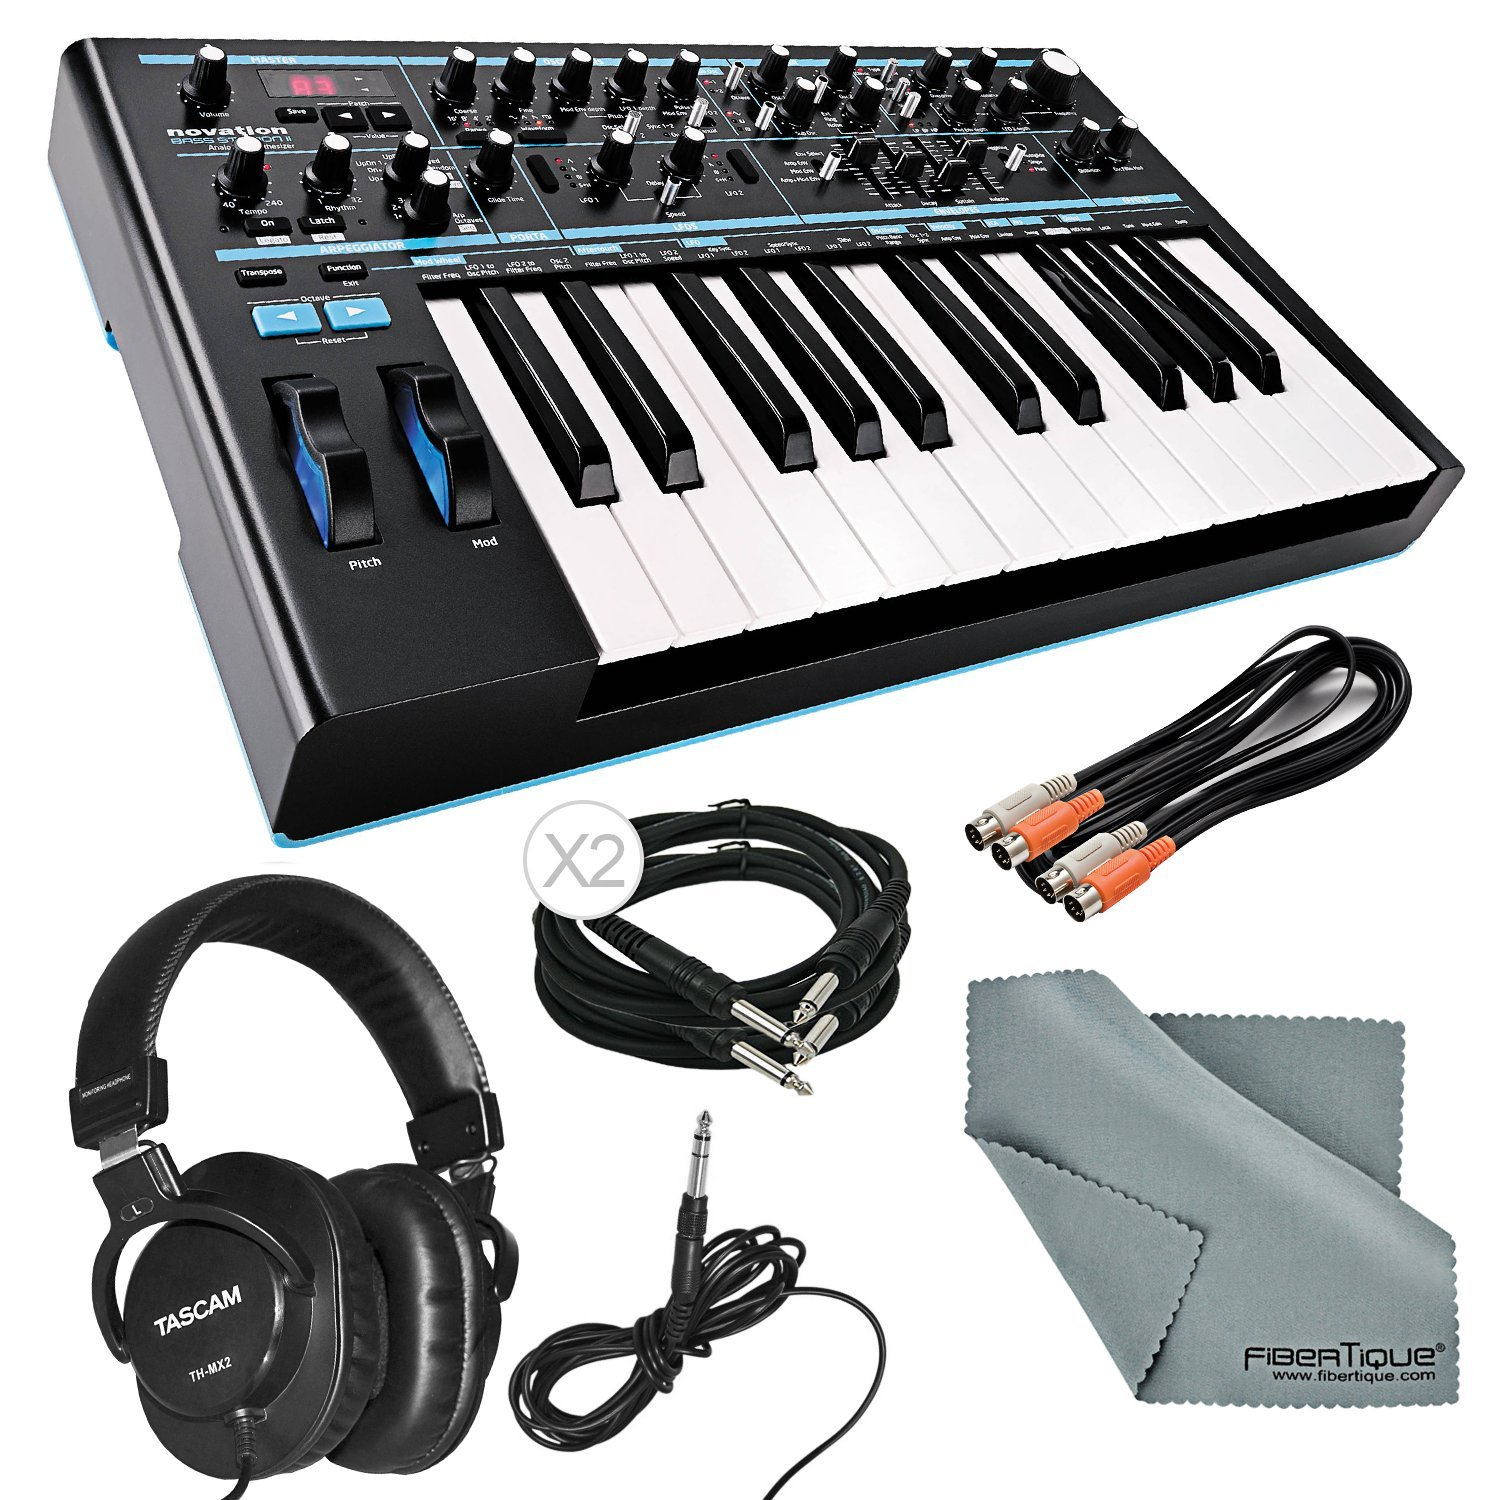 Novation Bass Station II Monophonic Analog Synthesizer and Bundle with Cables + Tascam Headphones + Fibertique Cleaning Cloth by Photo Savings